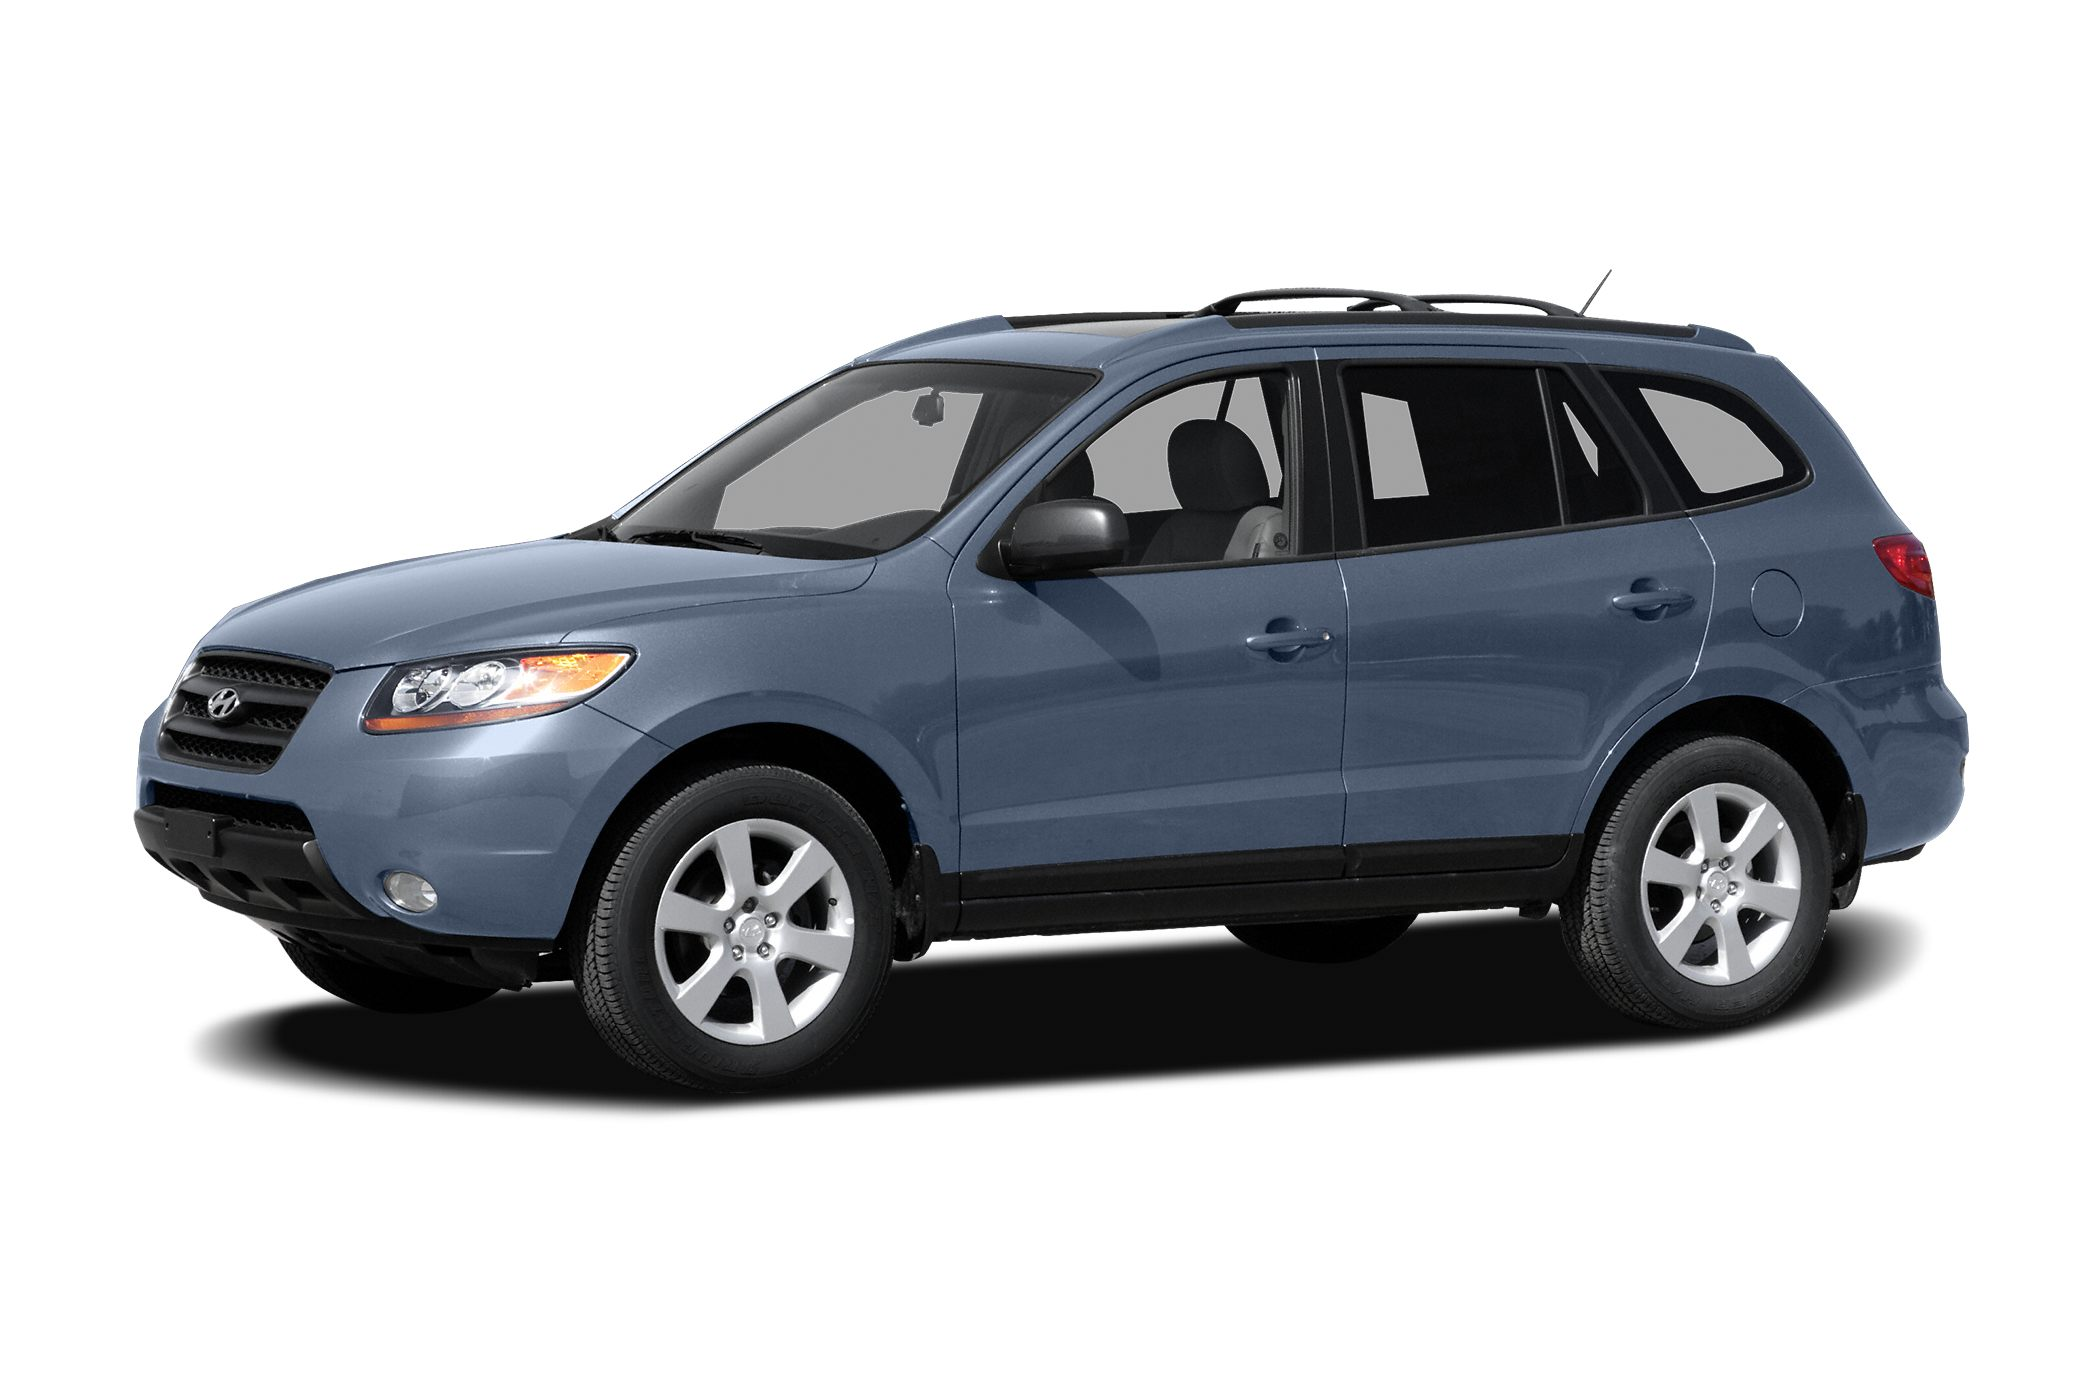 2009 Hyundai Santa Fe GLS SUV for sale in DeLand for $11,491 with 86,076 miles.